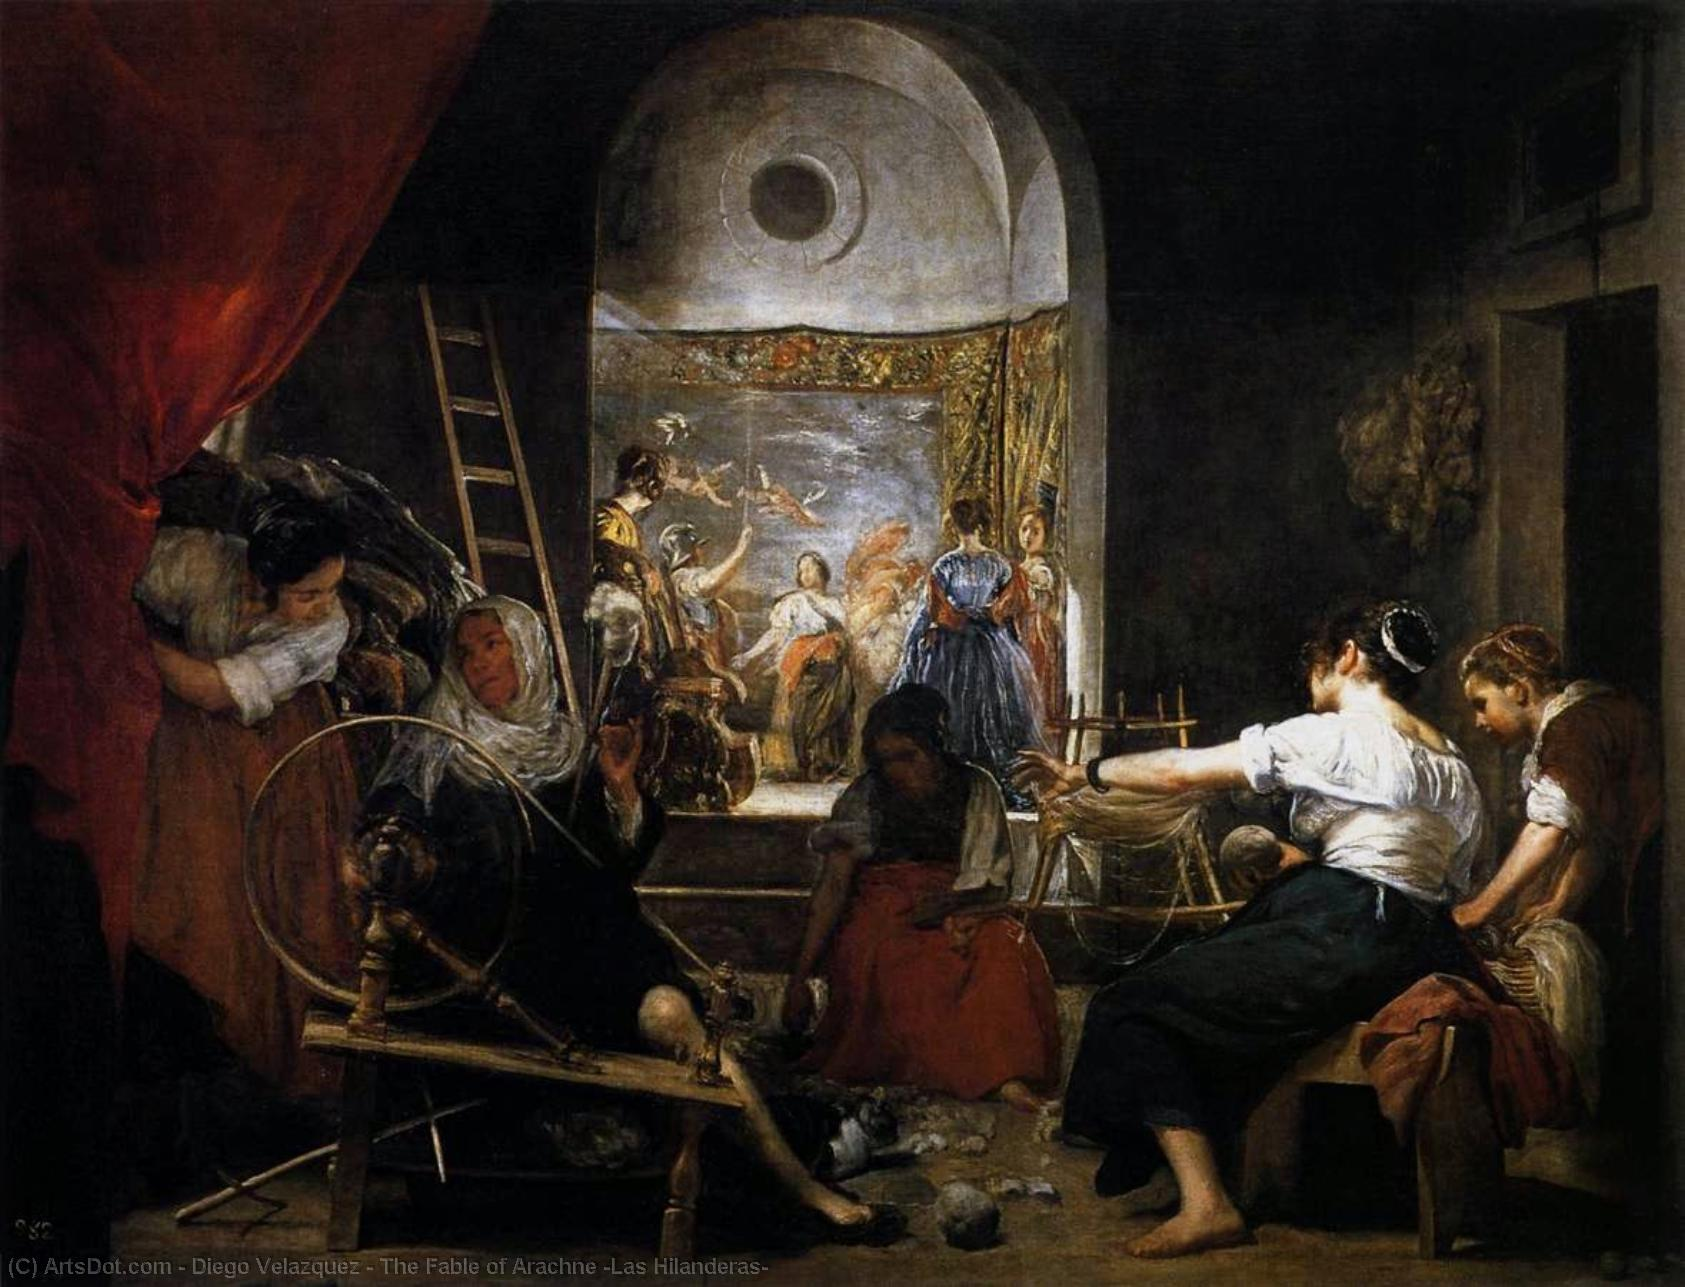 Wikioo.org - The Encyclopedia of Fine Arts - Painting, Artwork by Diego Velazquez - The Fable of Arachne (Las Hilanderas)